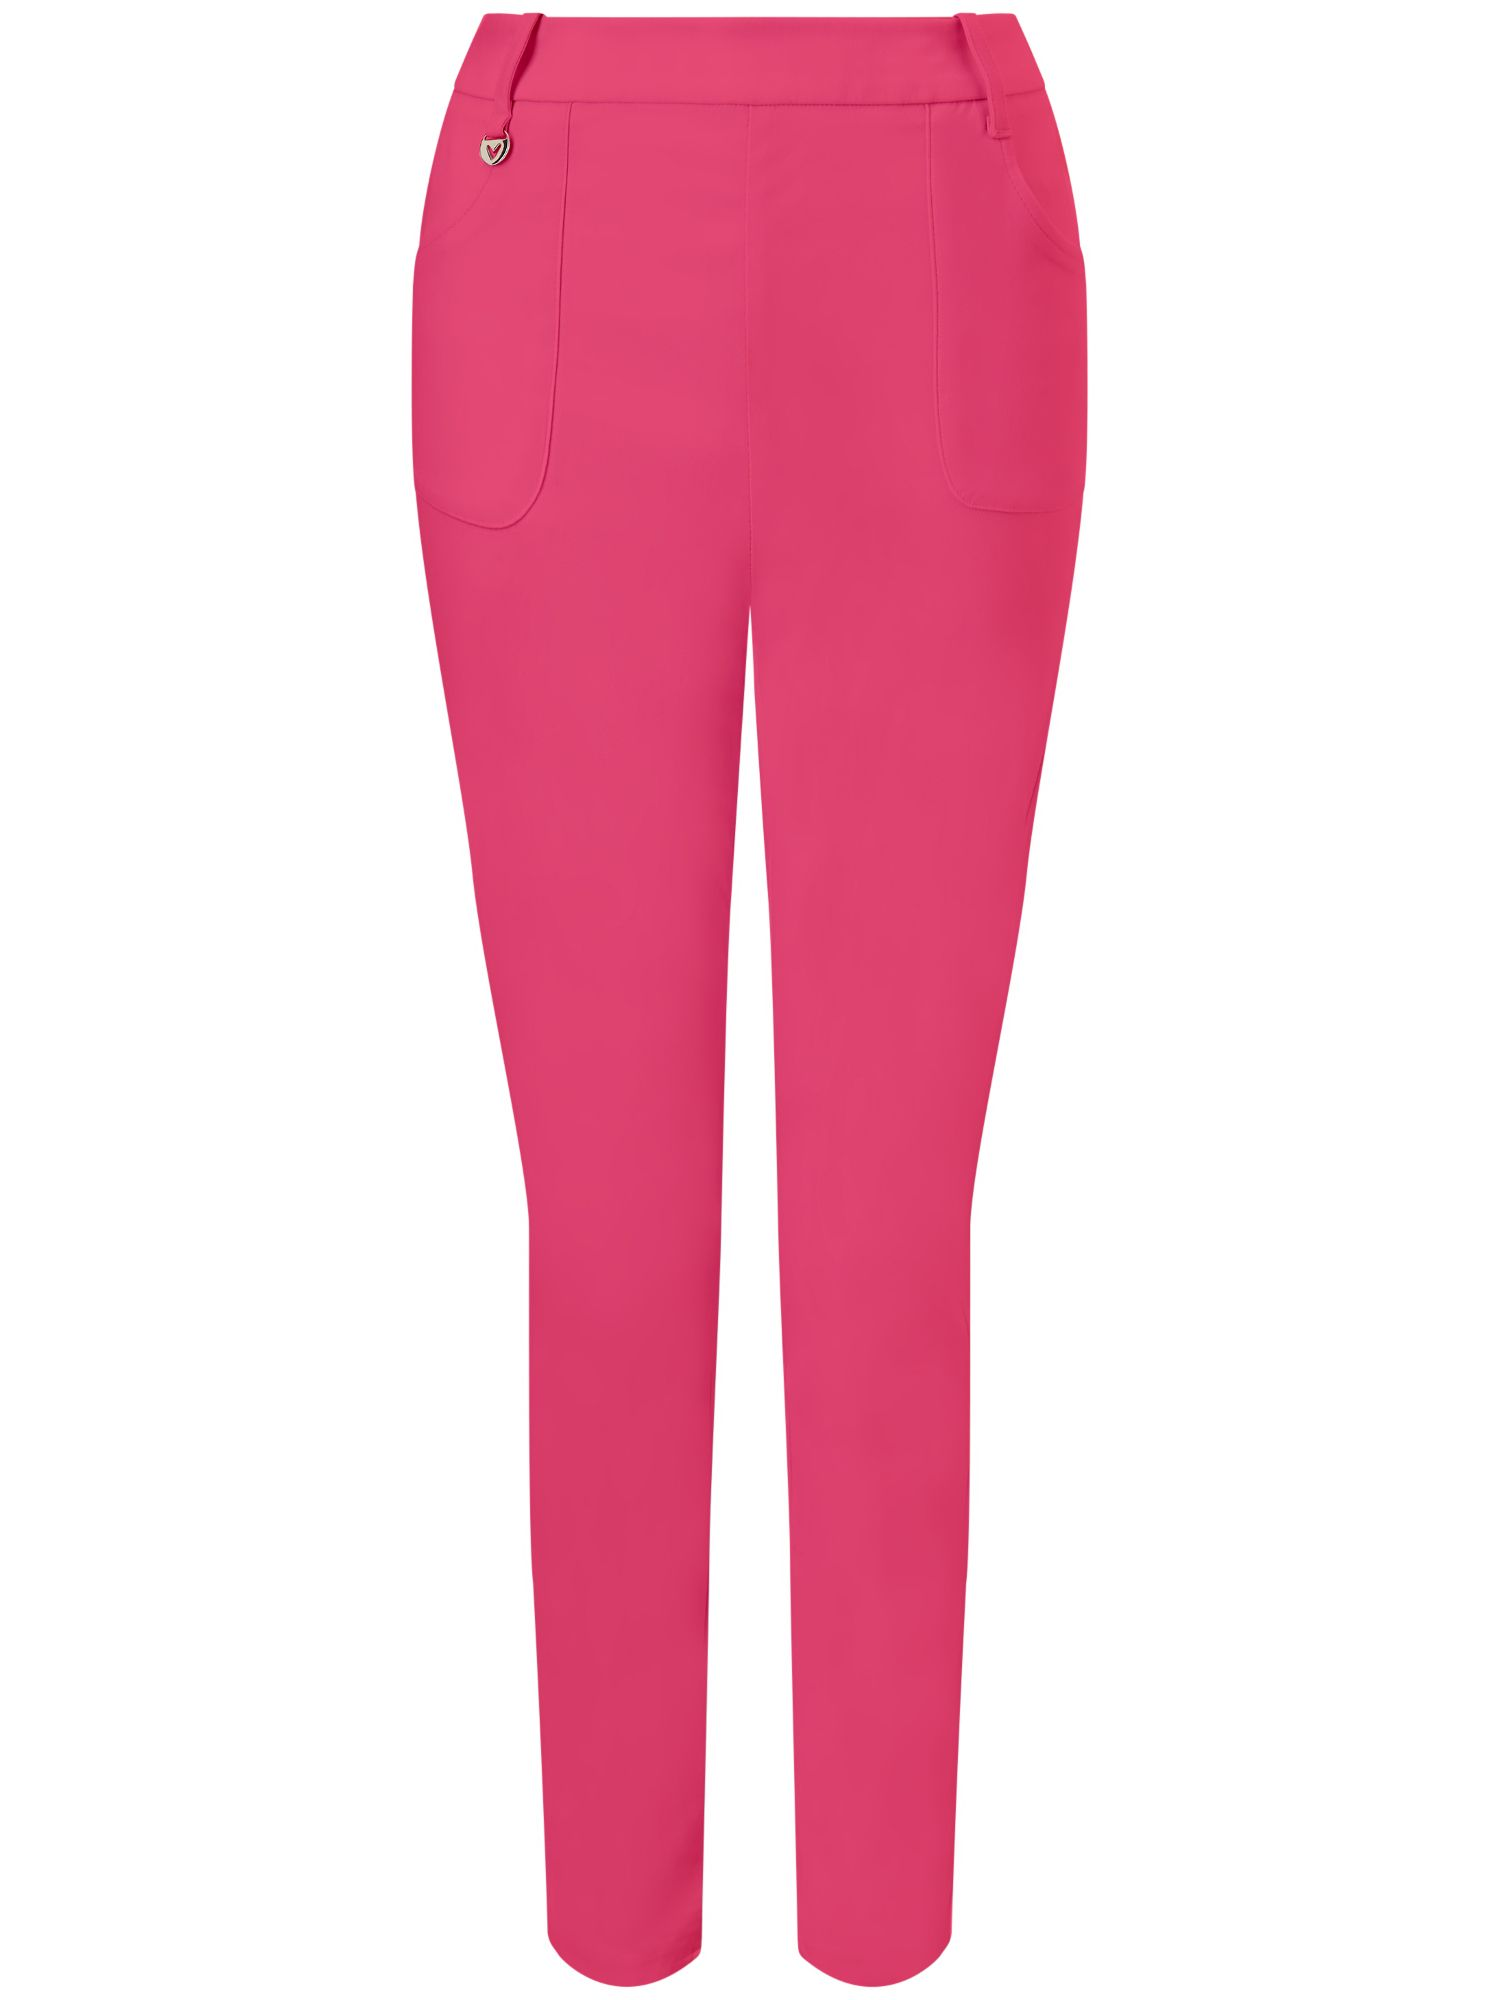 Callaway Pull On Trouser, Pink